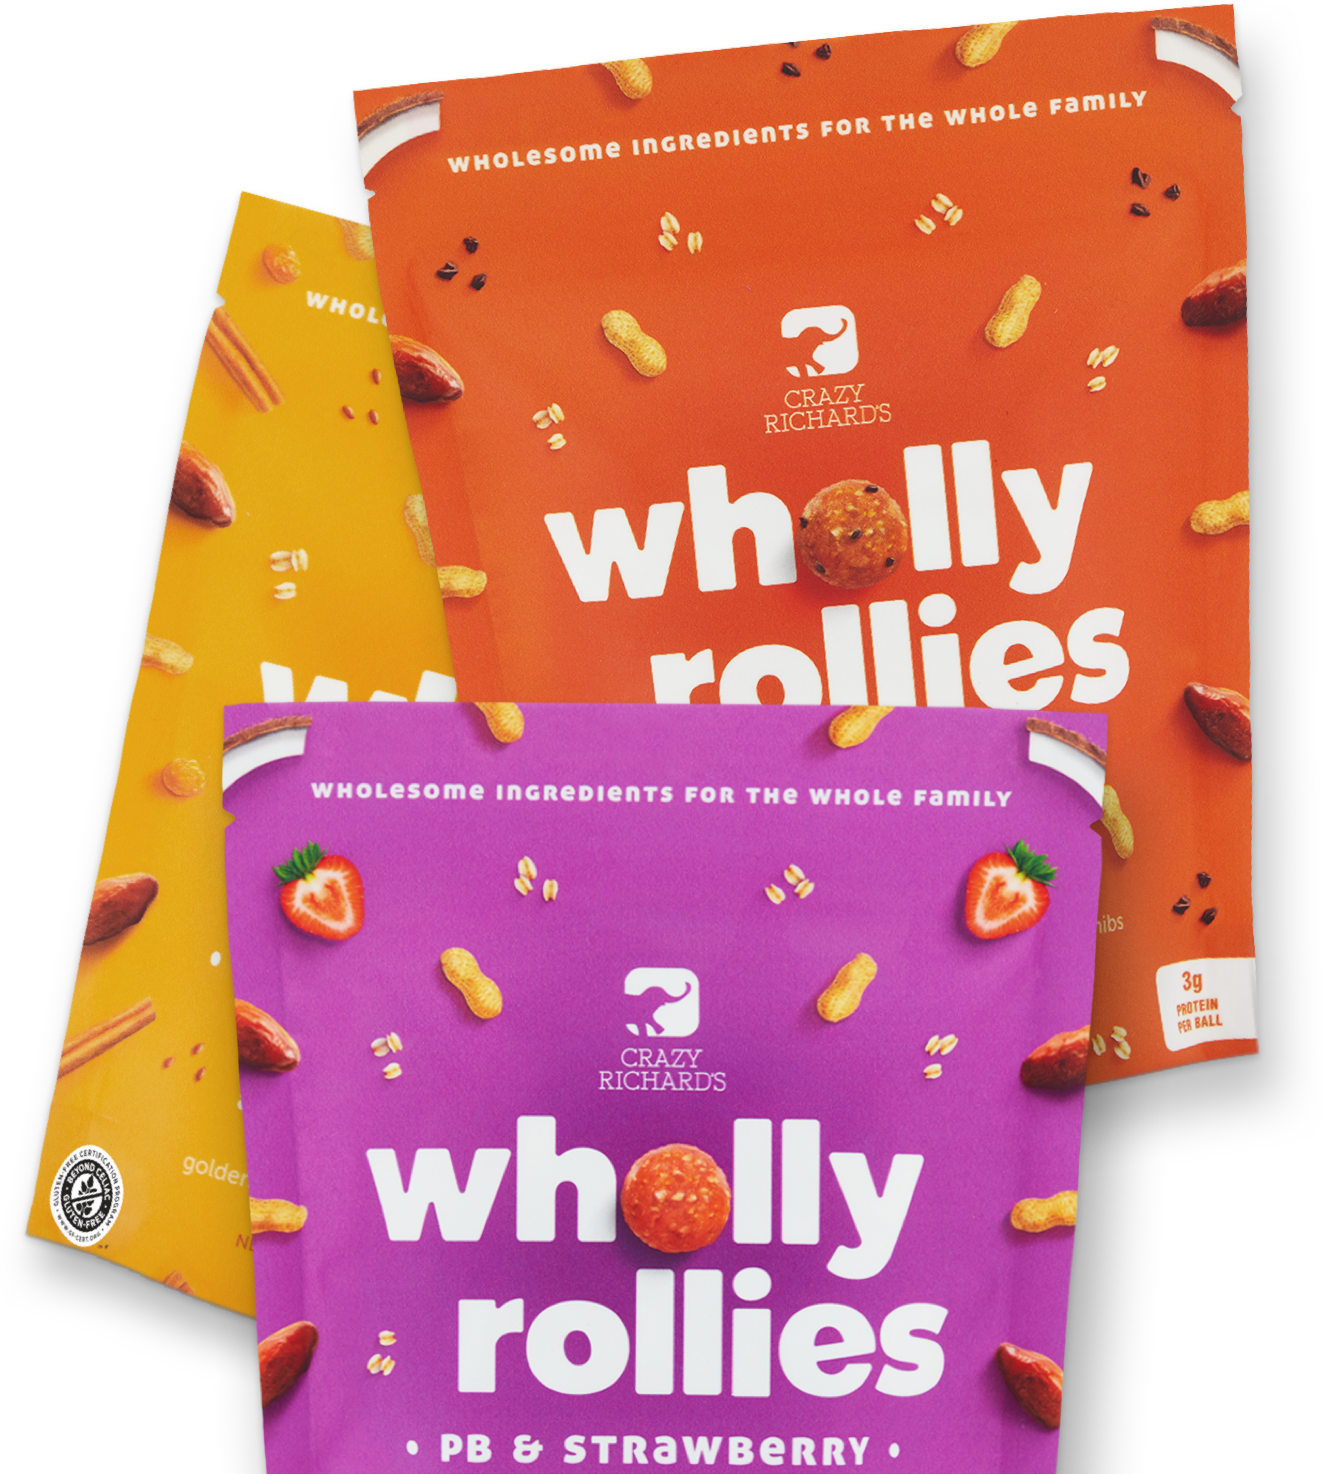 Wholly Rollies bags stacked on top of each other